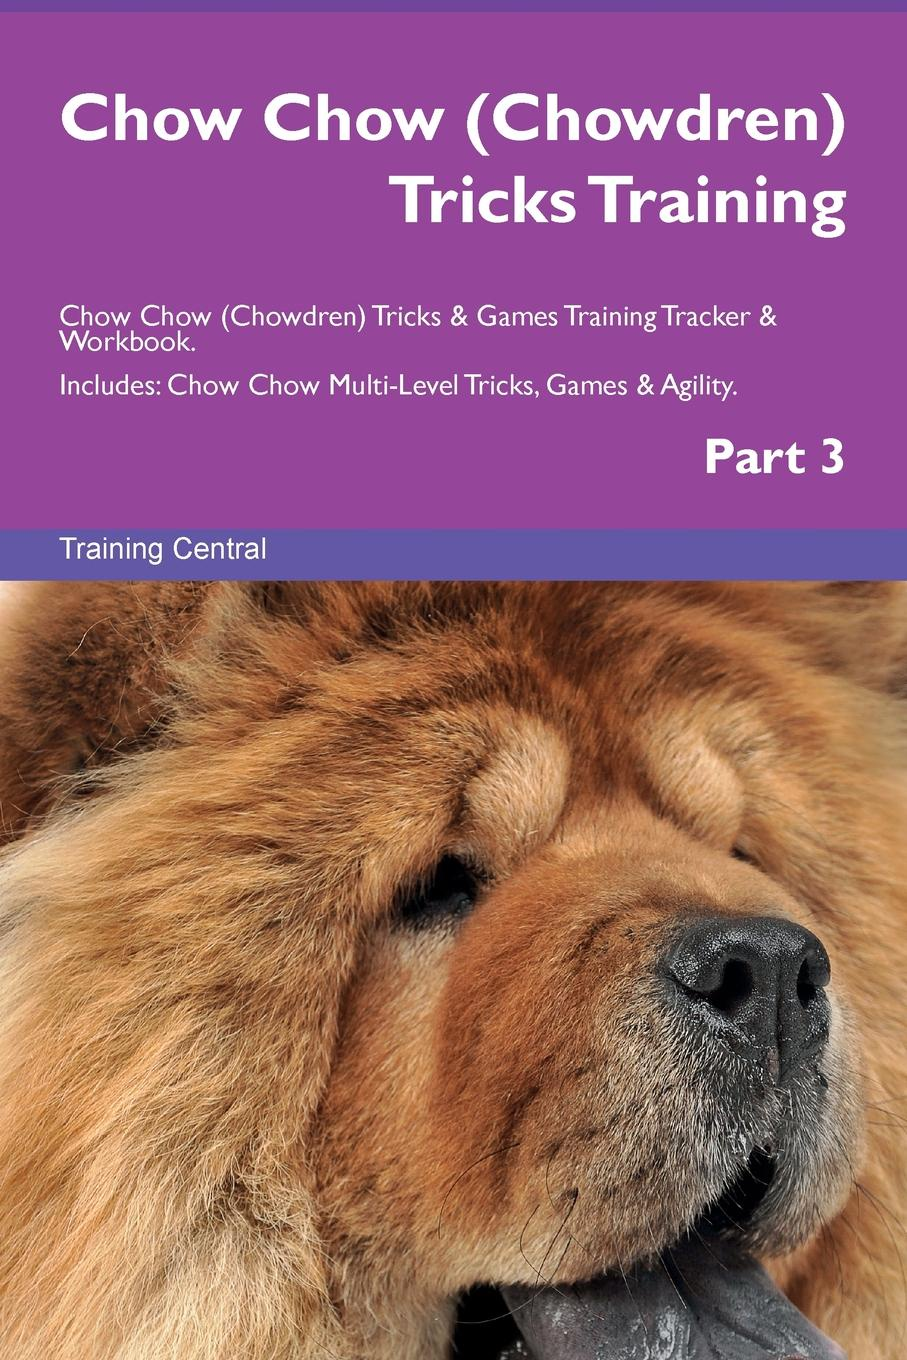 Training Central Chow Chow (Chowdren) Tricks Training Chow Chow (Chowdren) Tricks & Games Training Tracker & Workbook. Includes. Chow Chow Multi-Level Tricks, Games & Agility. Part 3 vivian chow macao